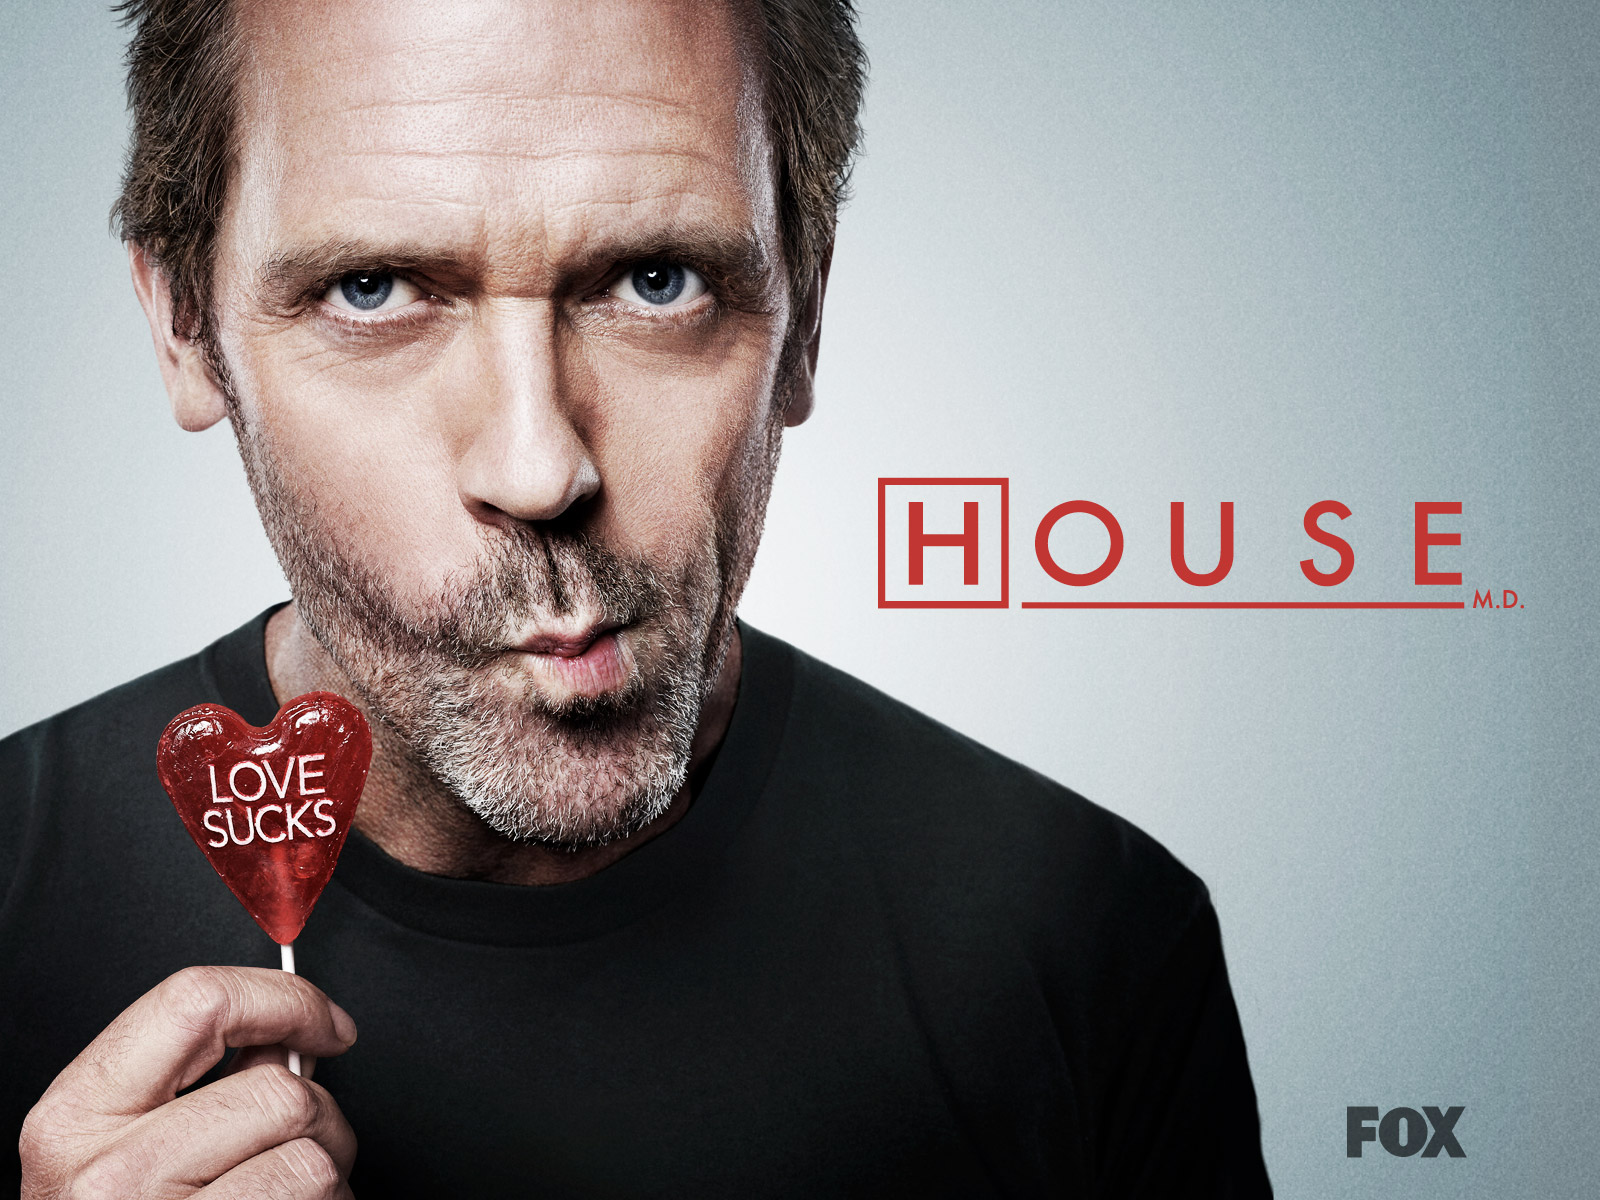 The show's Executives David Shore, Katie Jacobs and star Hugh Laurie